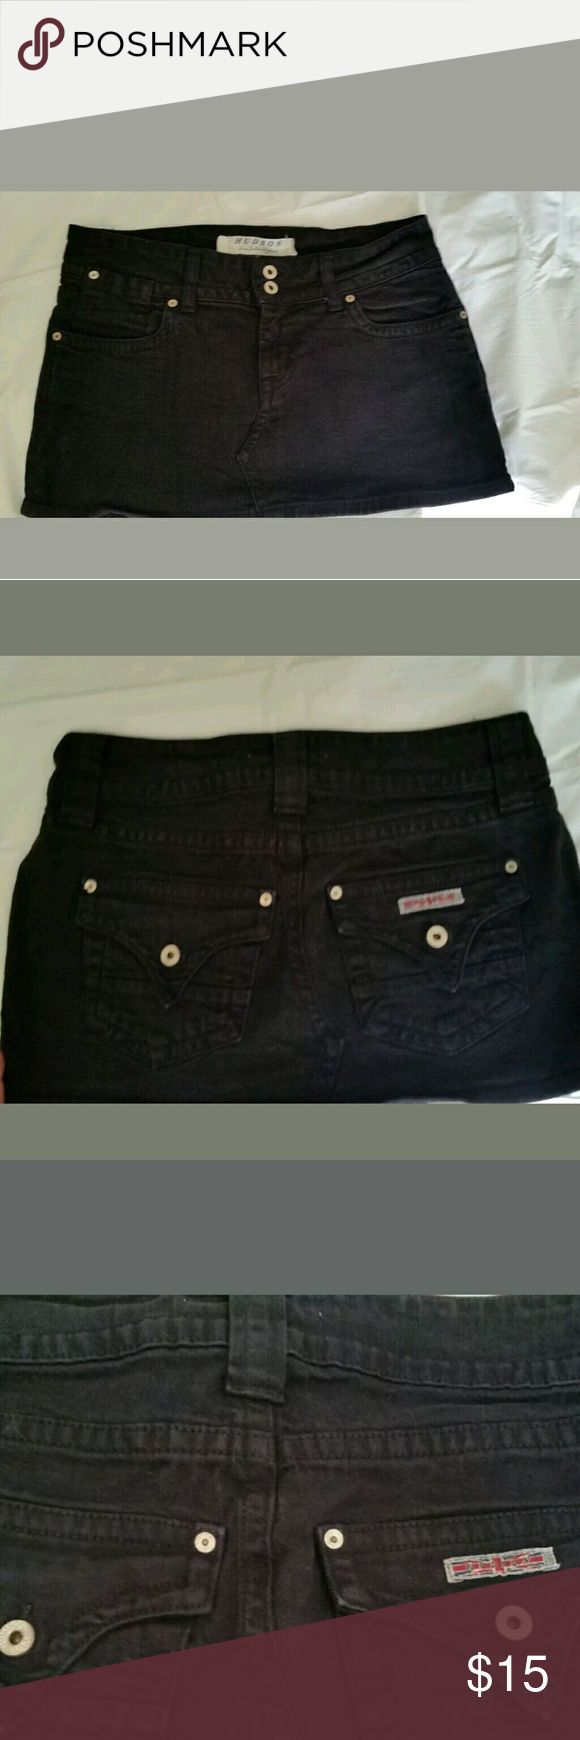 Hudson Black Jean Mini Skirt This skirt is in very good condition. Minimal fading, no holes or stains that I can see. Please look at the photos as they are part of the description.   I think this is a size 25. Please look at photos for a picture of the tag, and for measurements. Hudson Jeans Skirts Mini